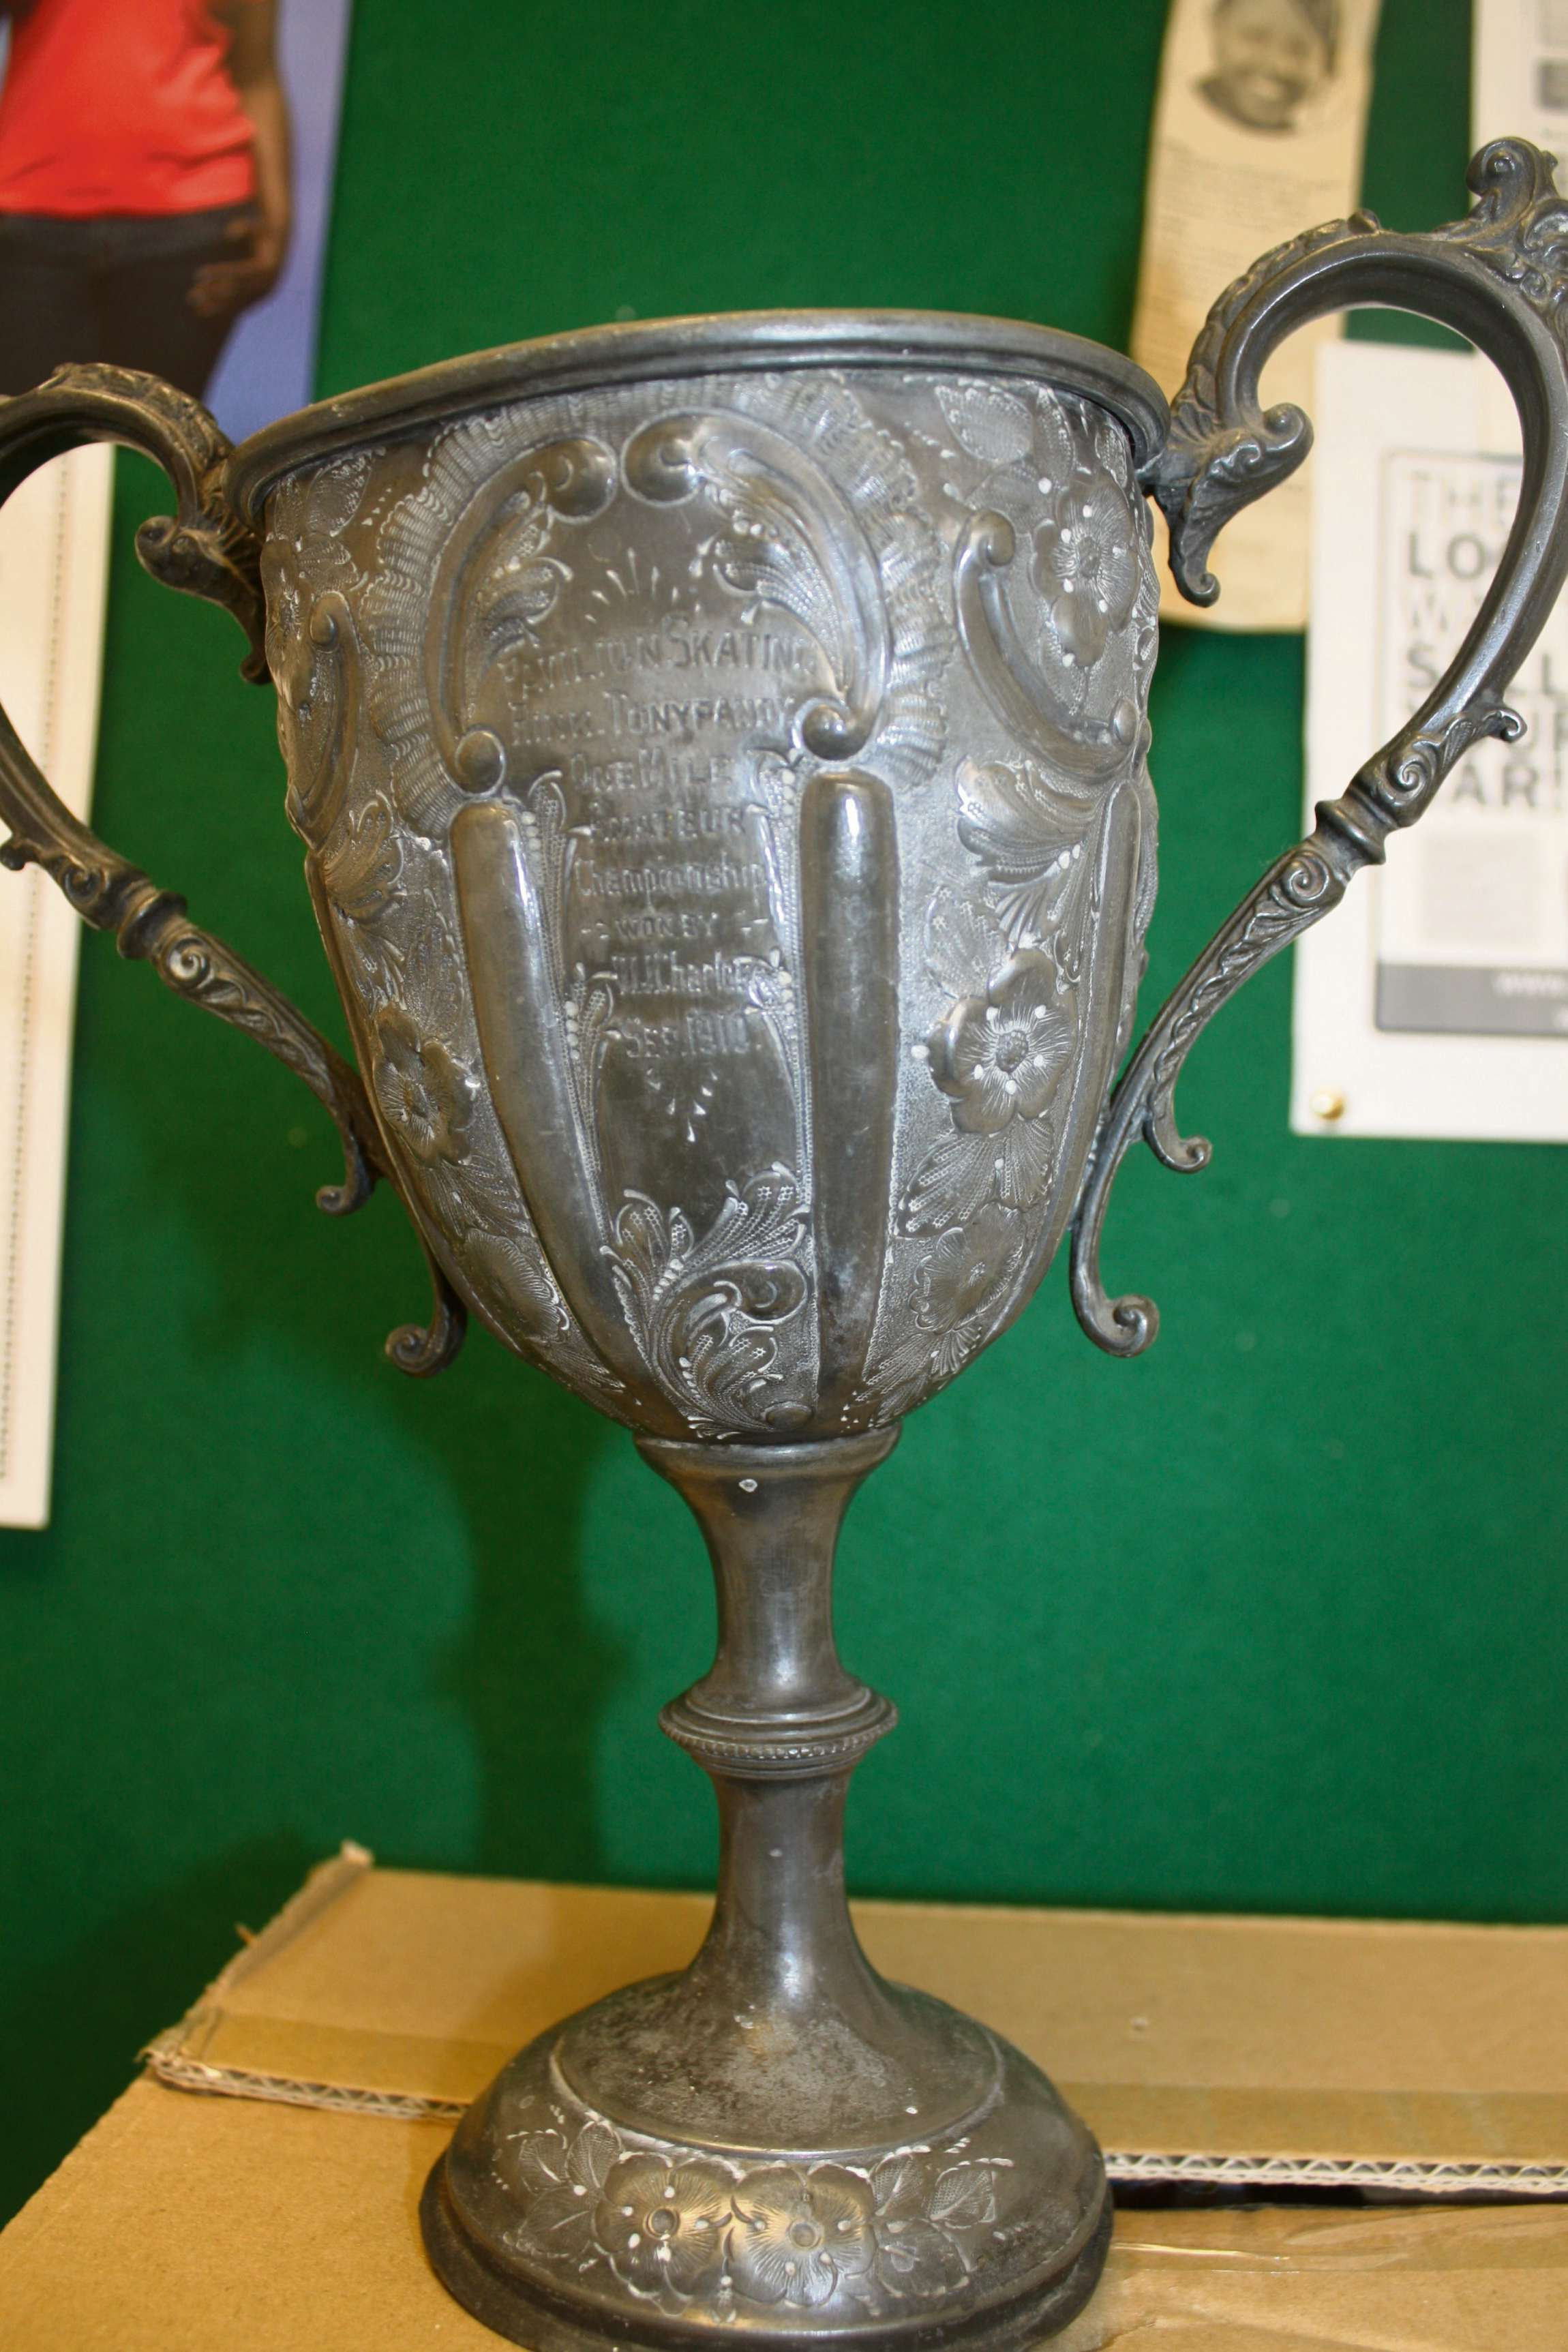 Mystery over found trophy